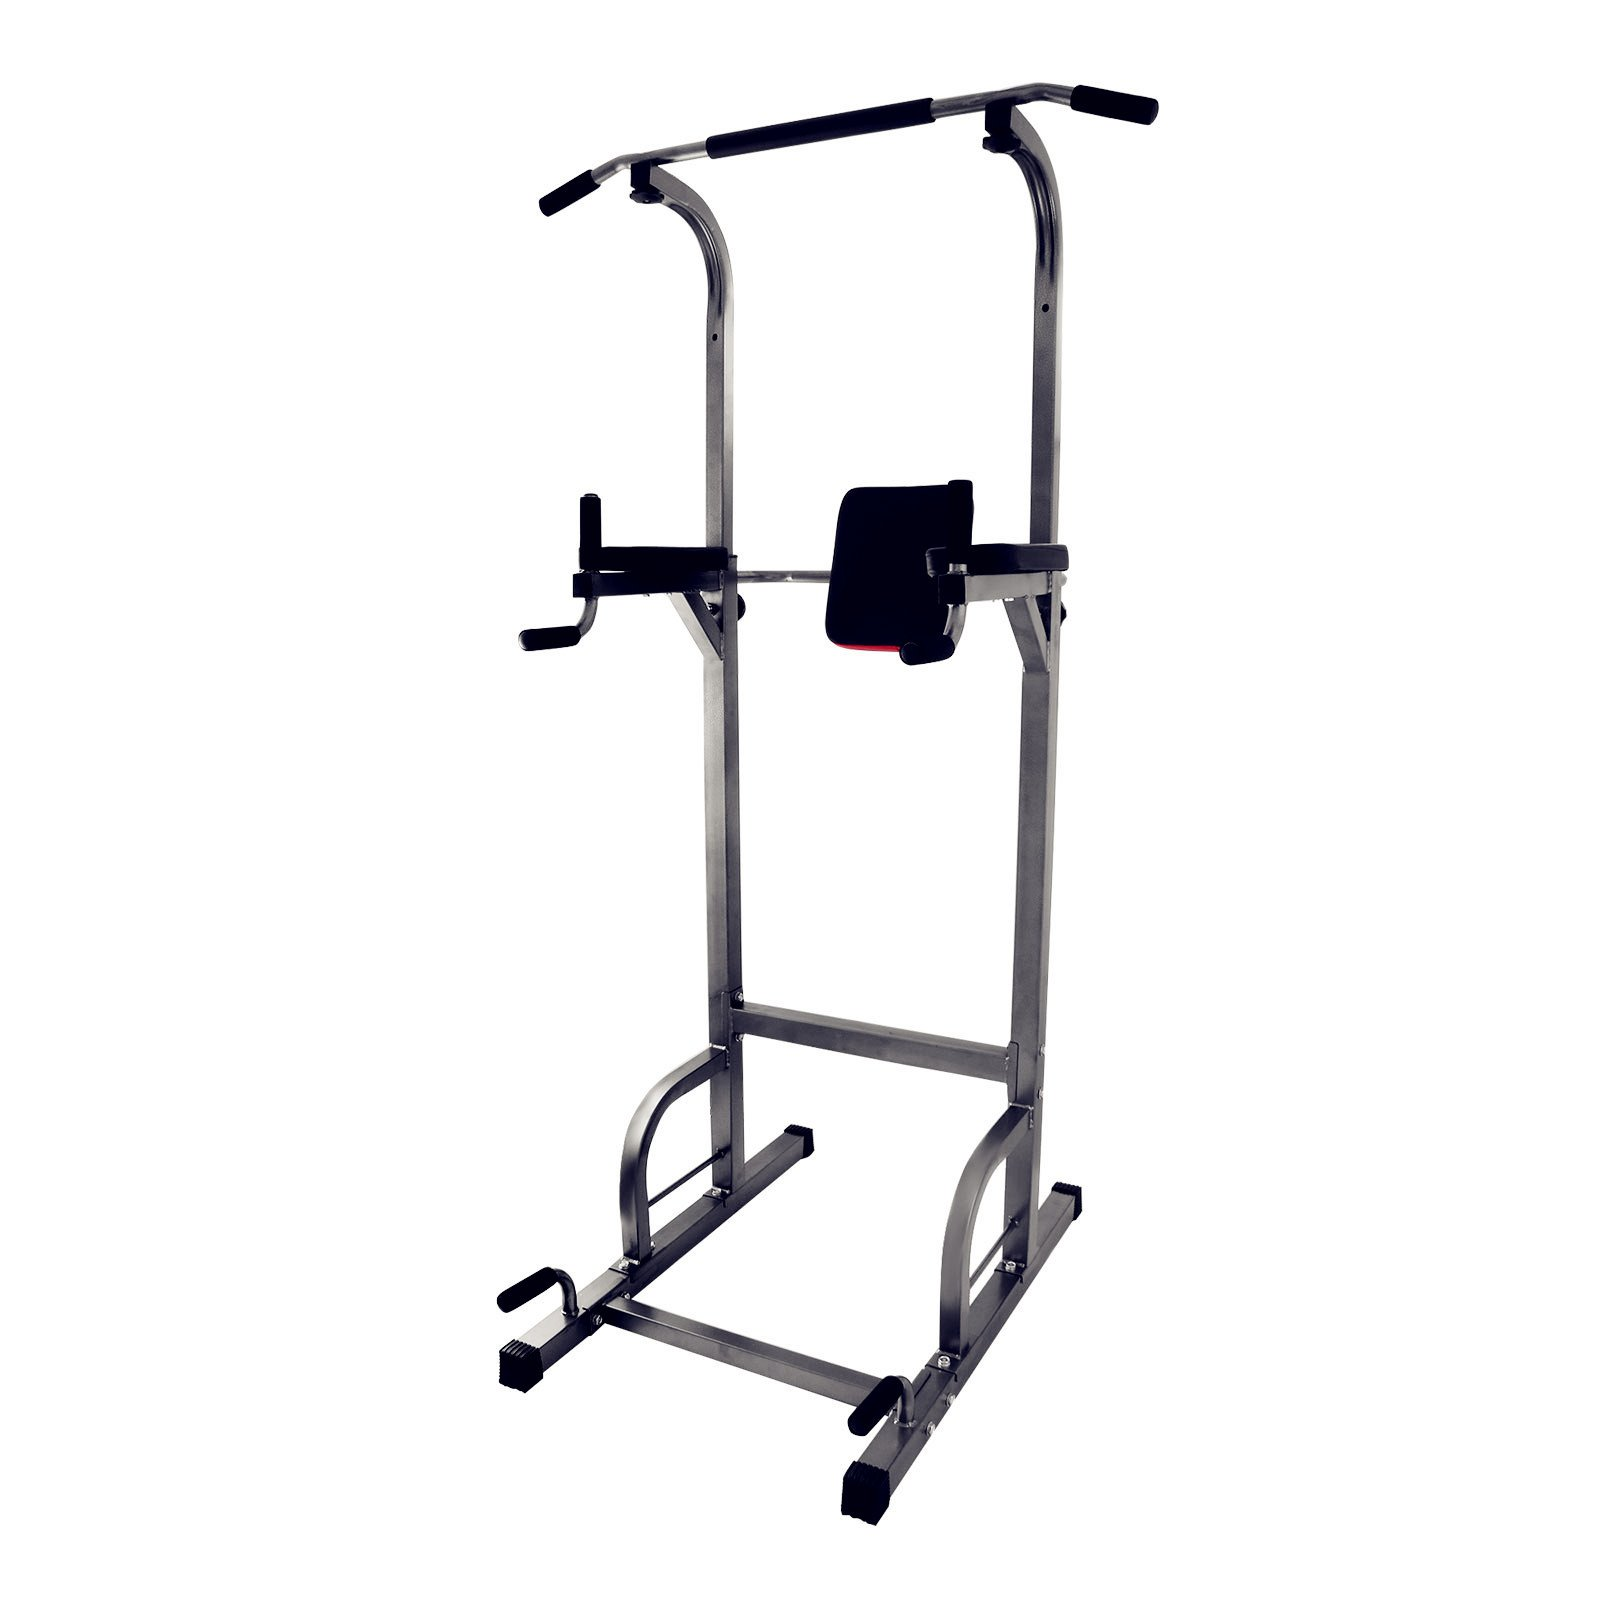 Popsport Power Tower Station 440LBS Multi-Station Power Tower Adjustable Height Dip-Station Workout Pull Up Station for Indoor Home Fitness (440LBS)